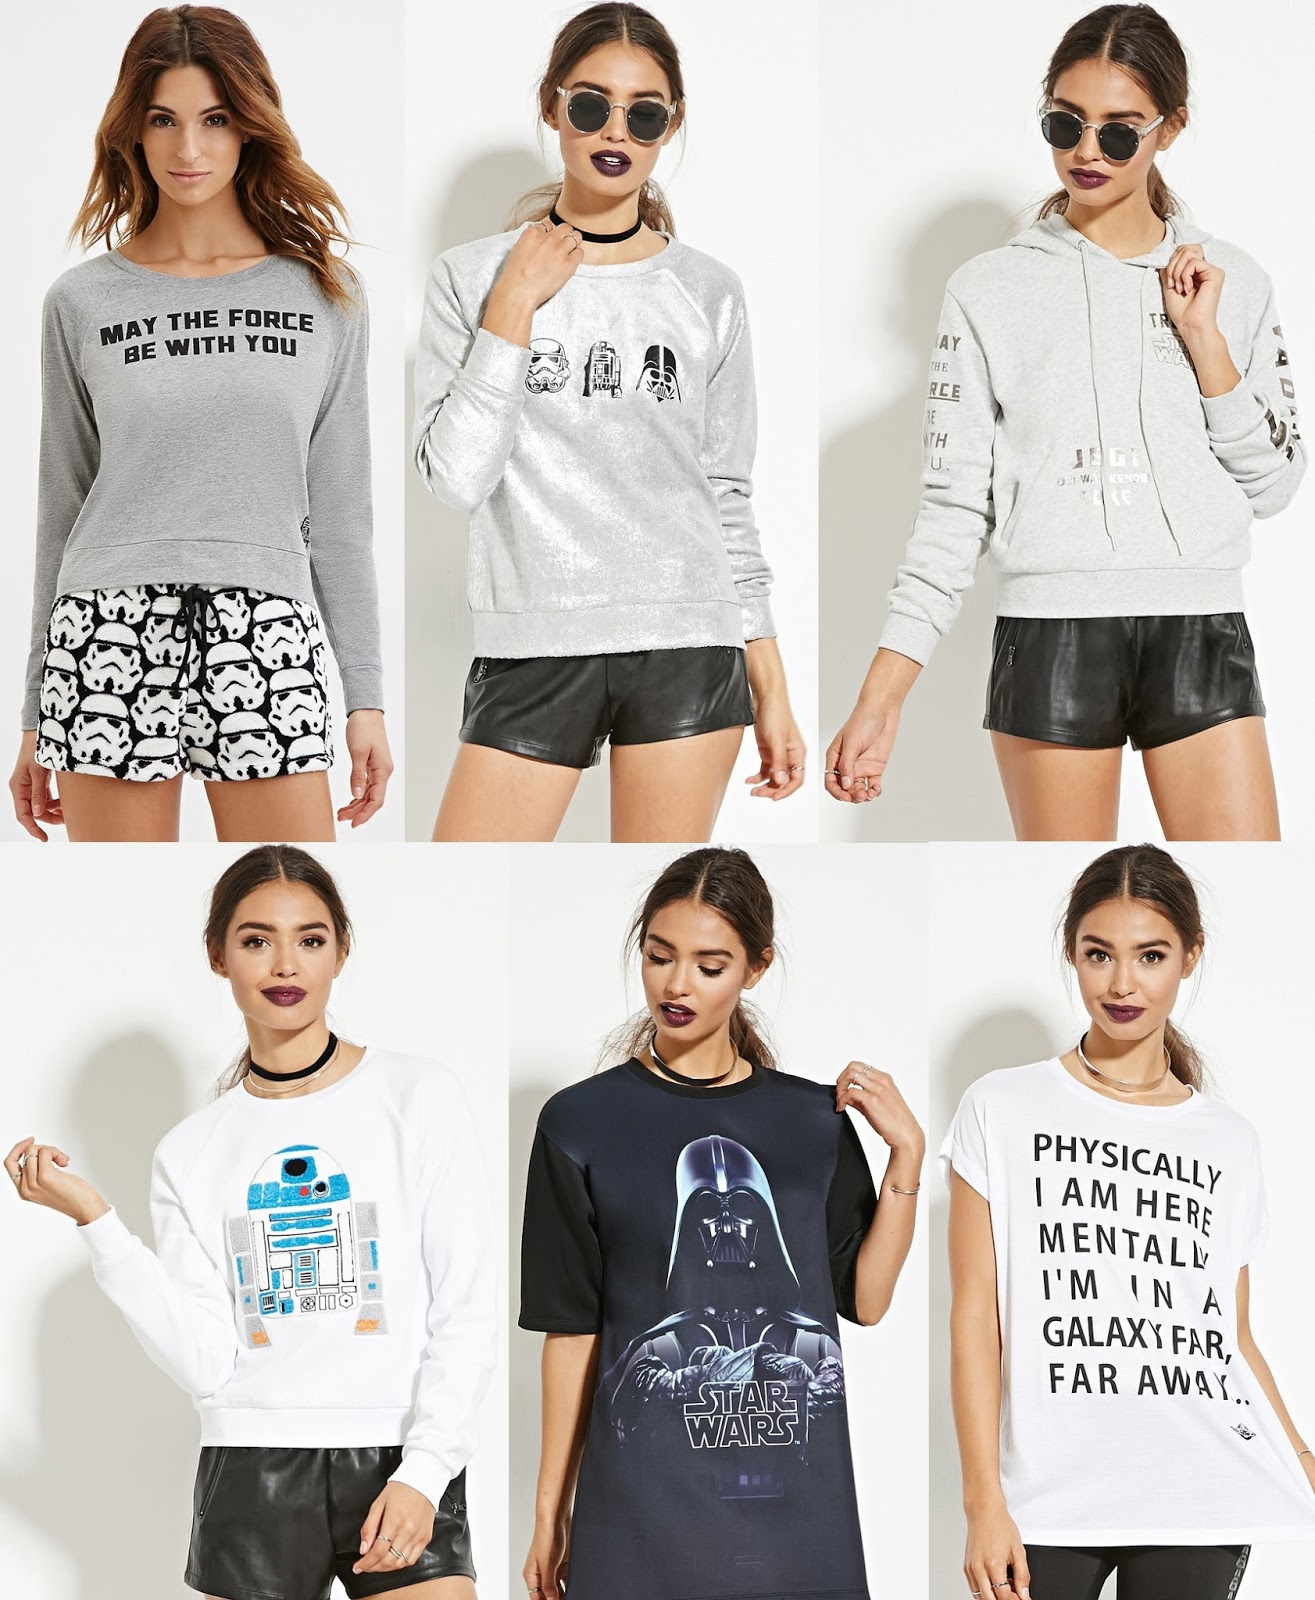 The Blot Says...: Star Wars x Forever 21 T-Shirt Collection